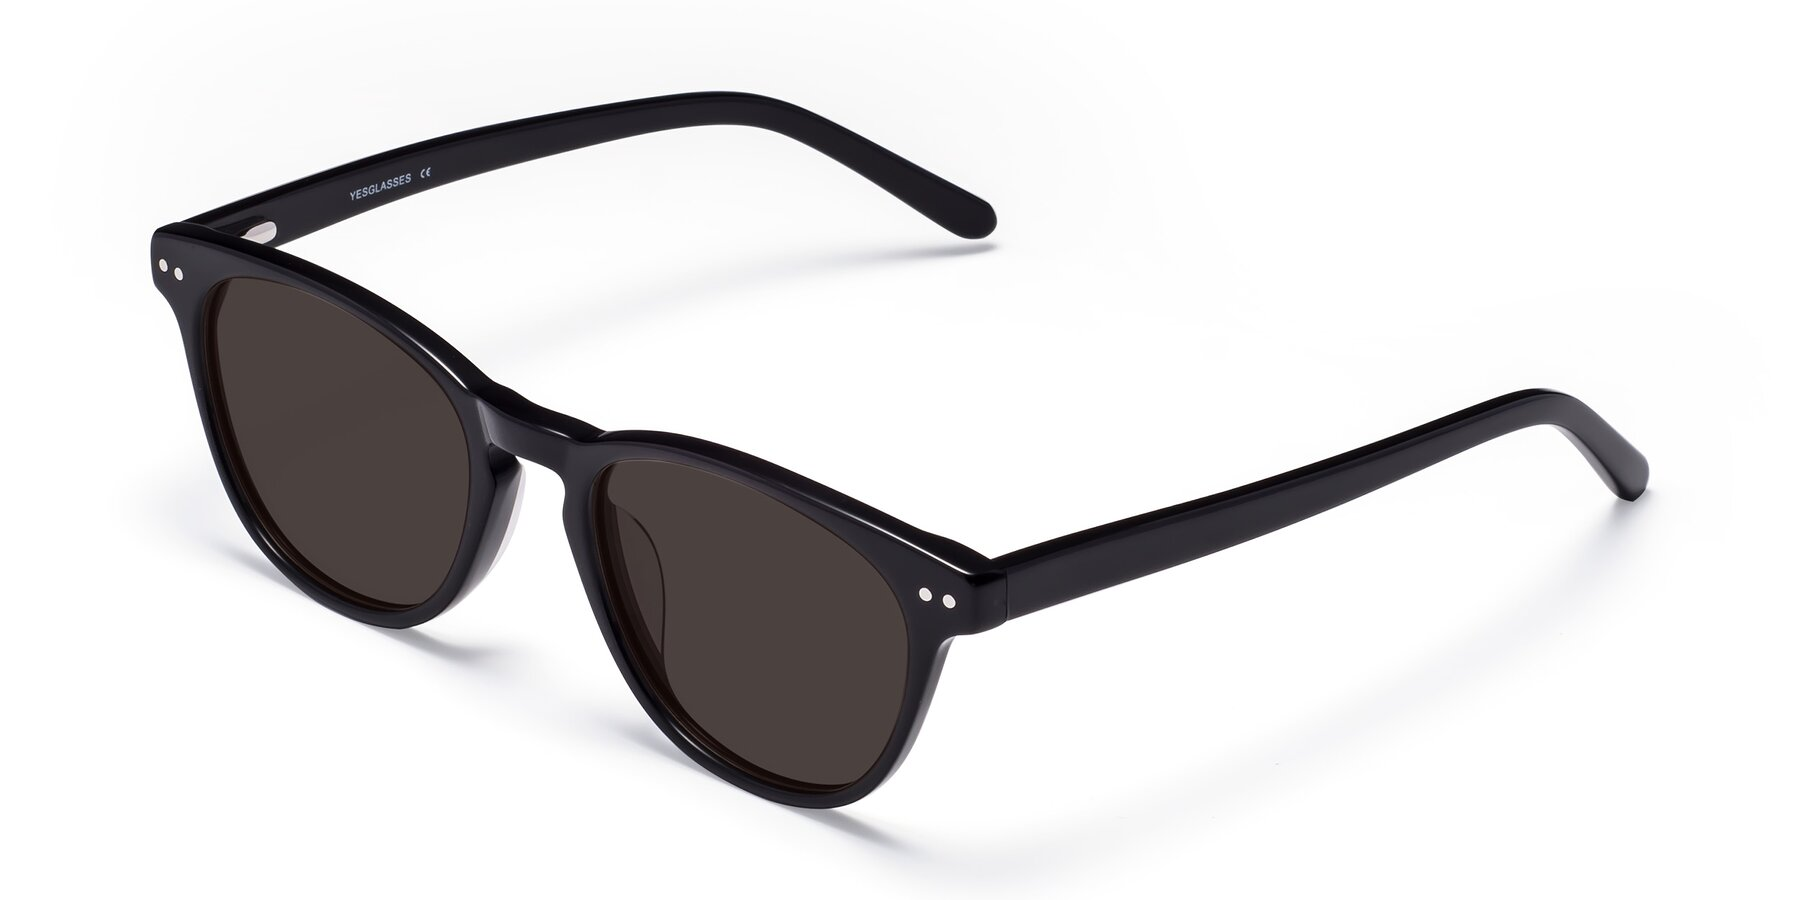 Angle of Blaze in Black with Gray Tinted Lenses